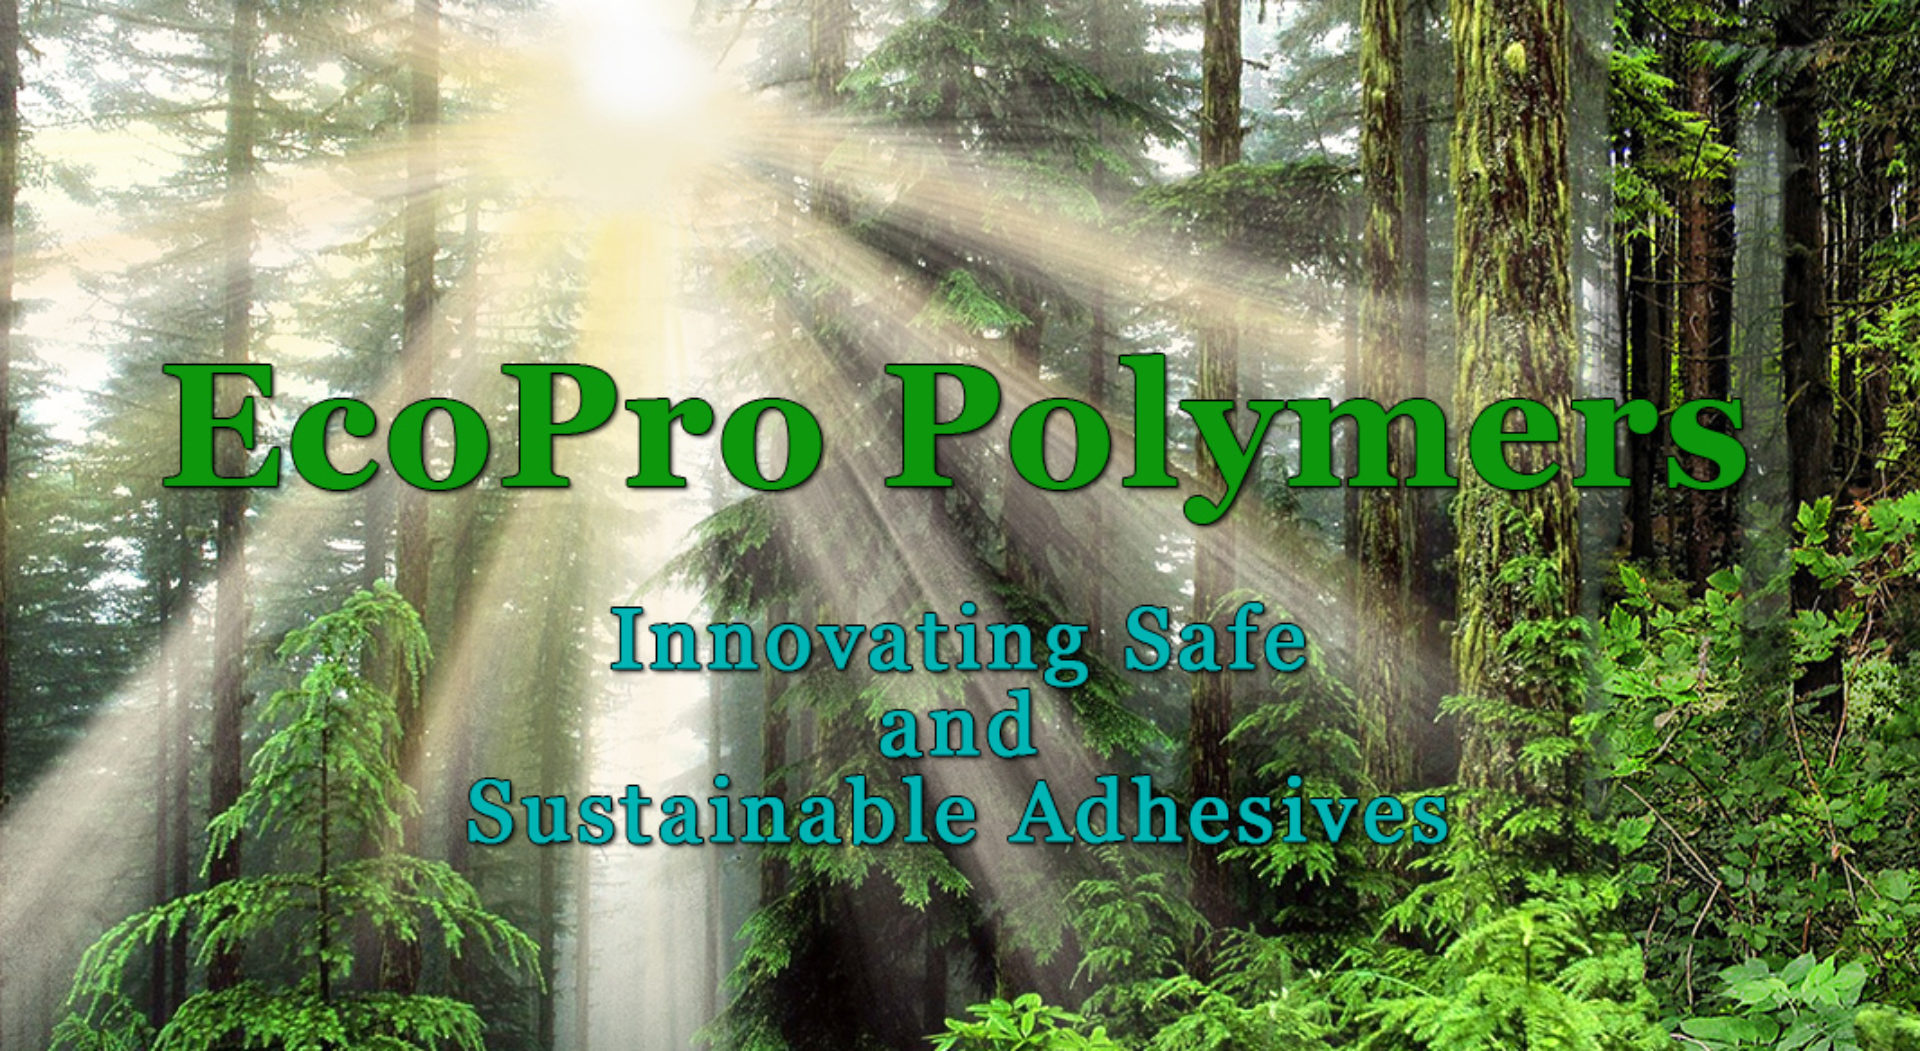 EcoPro Polymers